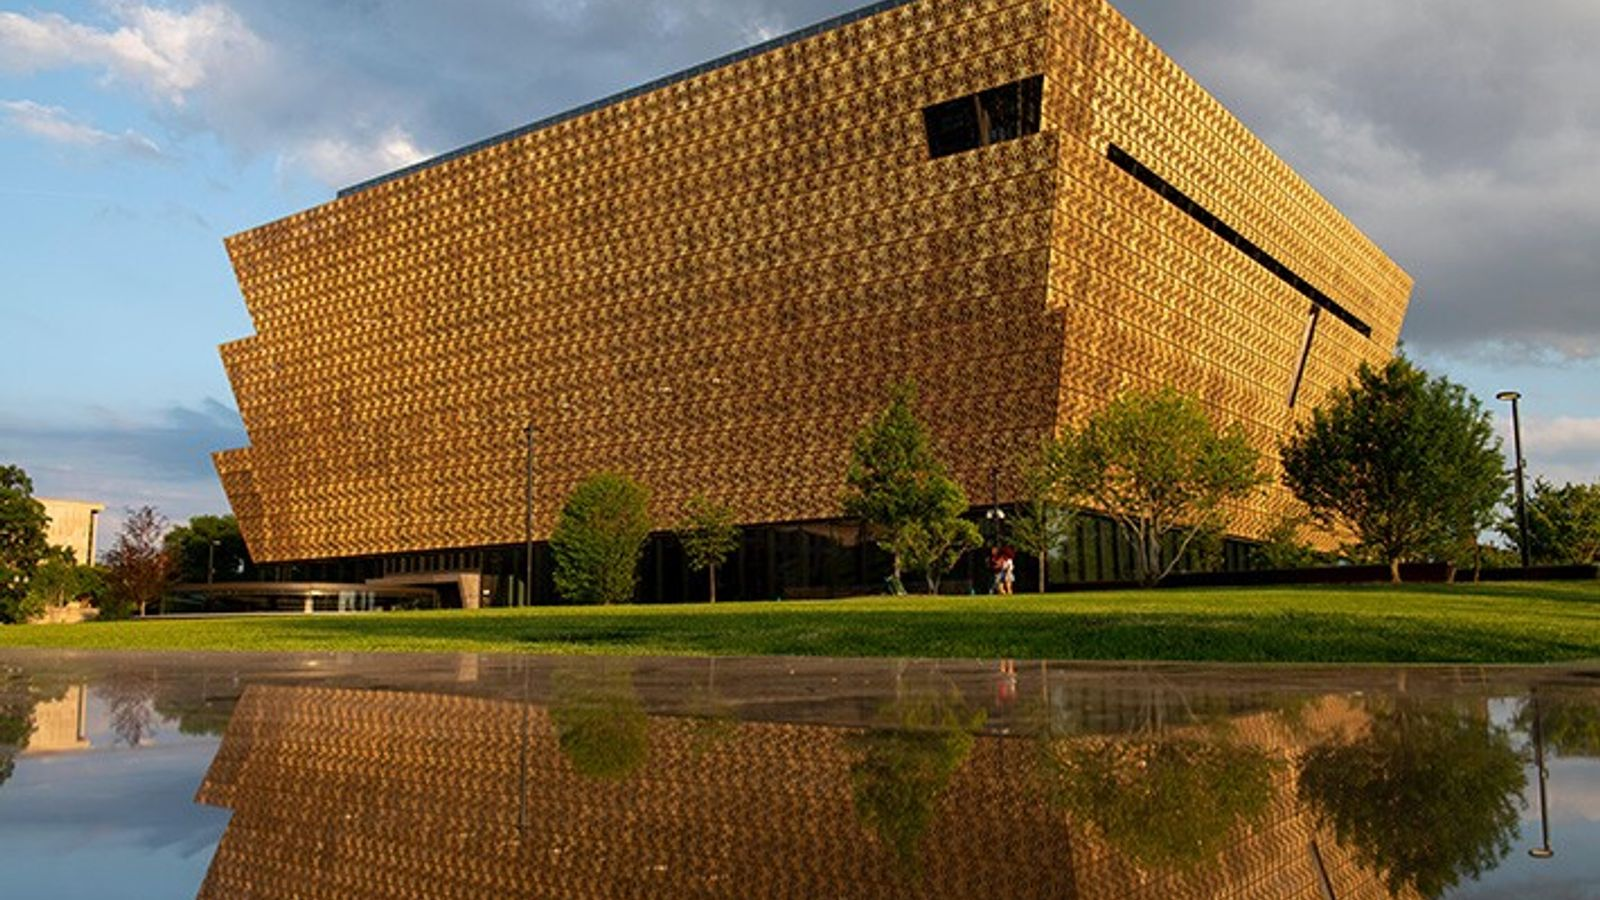 USA Washington DC Smithsonian Museum of African American History and Culture